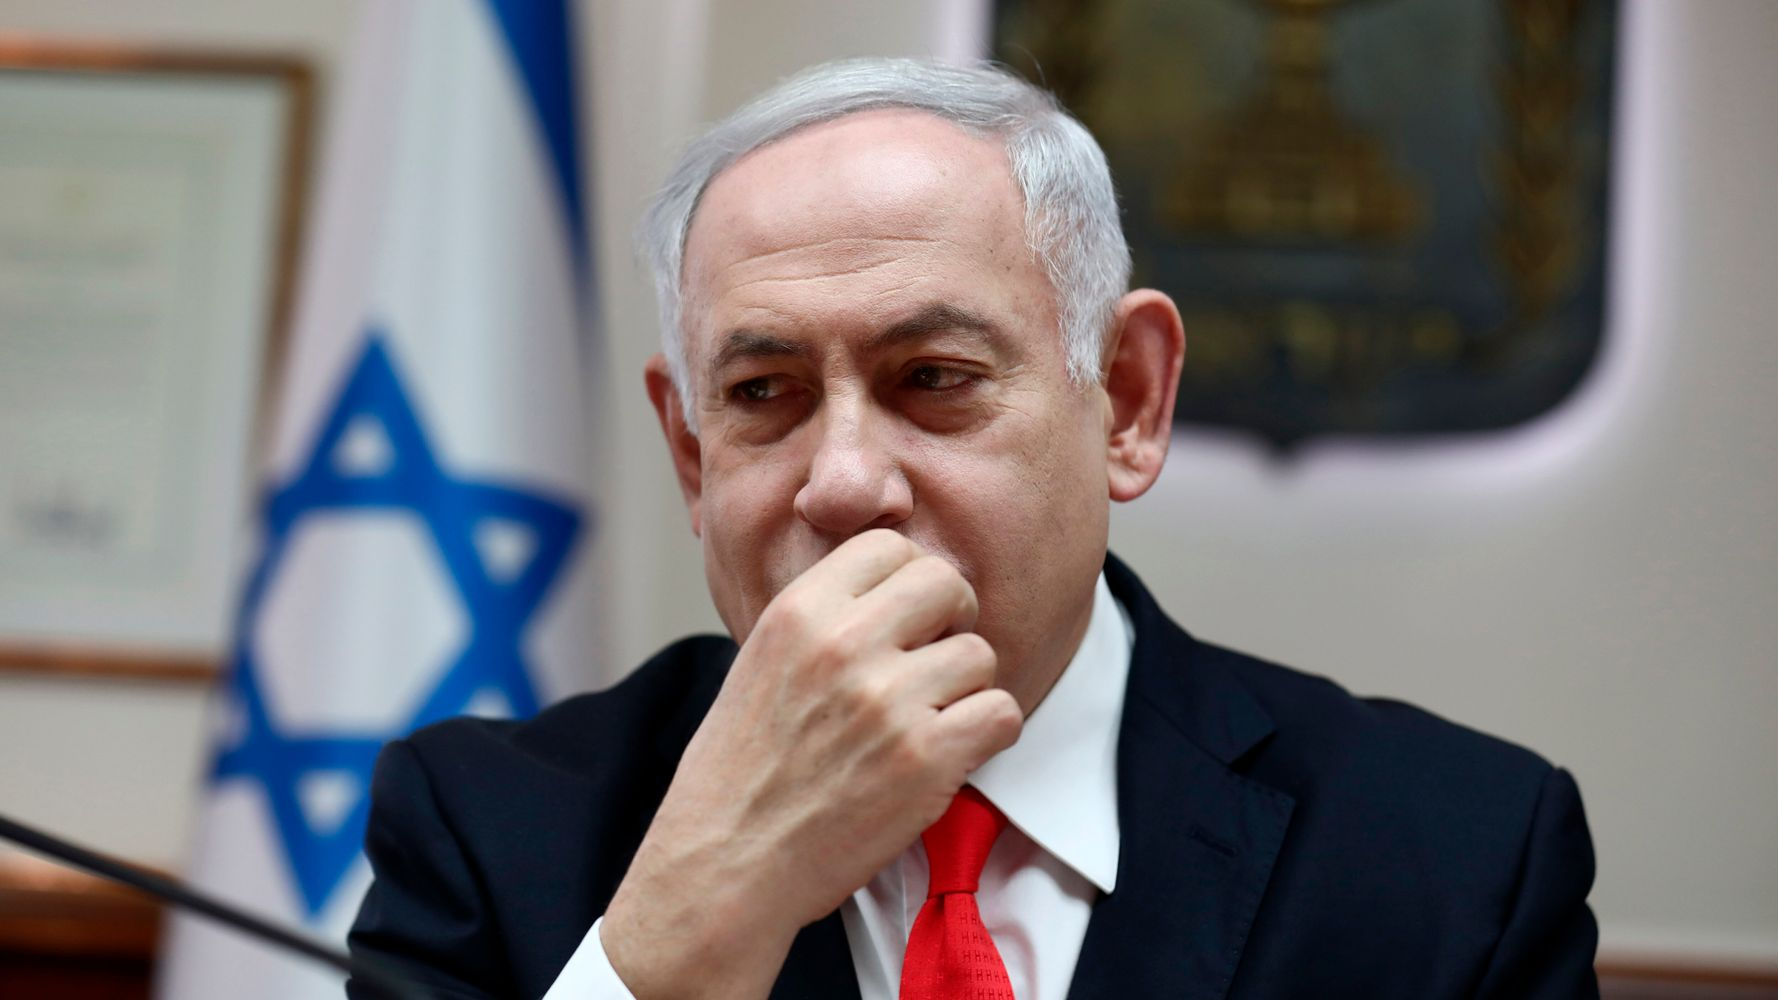 Westlake Legal Group 5e0d20e02500003cbad31906 Israel's Netanyahu Seeks Immunity, Buying Time Until After Vote